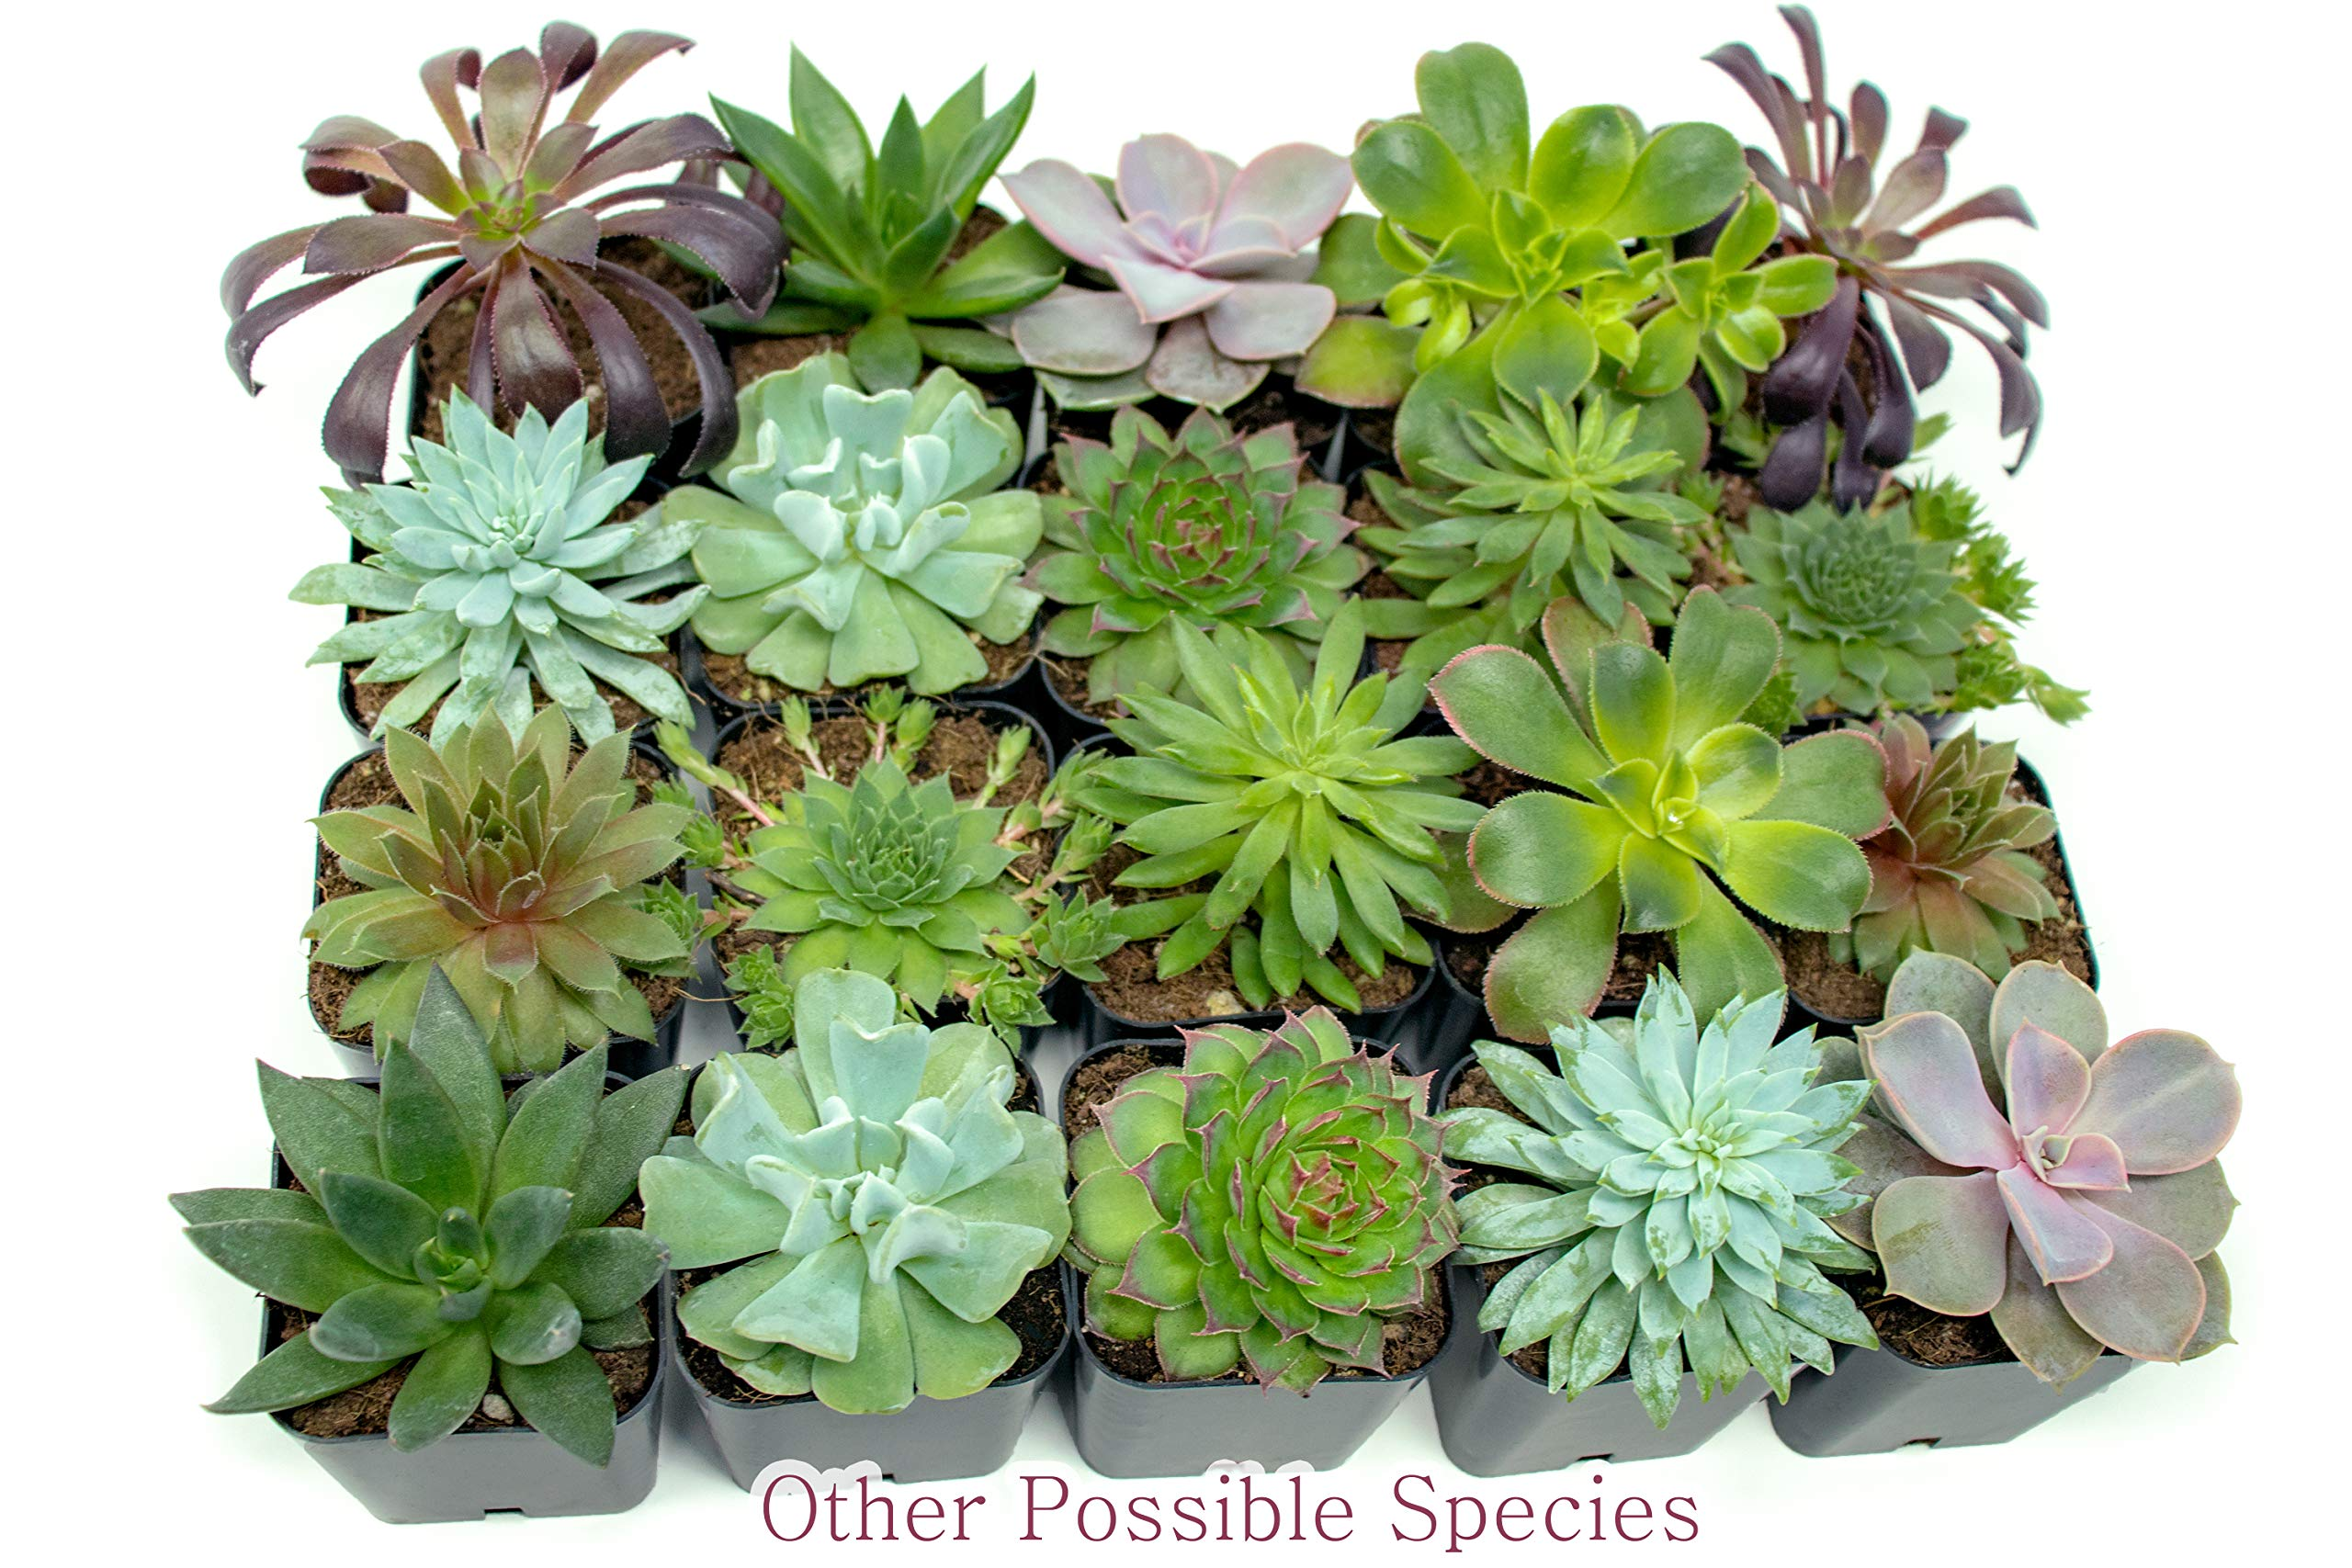 Succulent Plants (5 Pack), Fully Rooted in Planter Pots with Soil -  Real Live Potted Succulents / Unique Indoor Cactus Decor by Plants for Pets 10 HAND SELECTED: Every pack of succulents we send is hand-picked. You will receive a unique collection of species that are FULLY ROOTED IN 2 INCH POTS, which will be similar to the product photos (see photo 2 for scale). Note that we rotate our nursery stock often, so the exact species we send changes every week. THE EASIEST HOUSE PLANTS: More appealing than artificial plastic or fake faux plants, and care is a cinch. If you think you can't keep houseplants alive, you're wrong; our succulents don't require fertilizer and can be planted in a decorative pot of your choice within seconds. DIY HOME DECOR: The possibilities are only limited by your imagination; display them in a plant holder, a wall mount, a geometric glass vase, or even in a live wreath. Because of their amazingly low care requirements, they can even make the perfect desk centerpiece for your office.